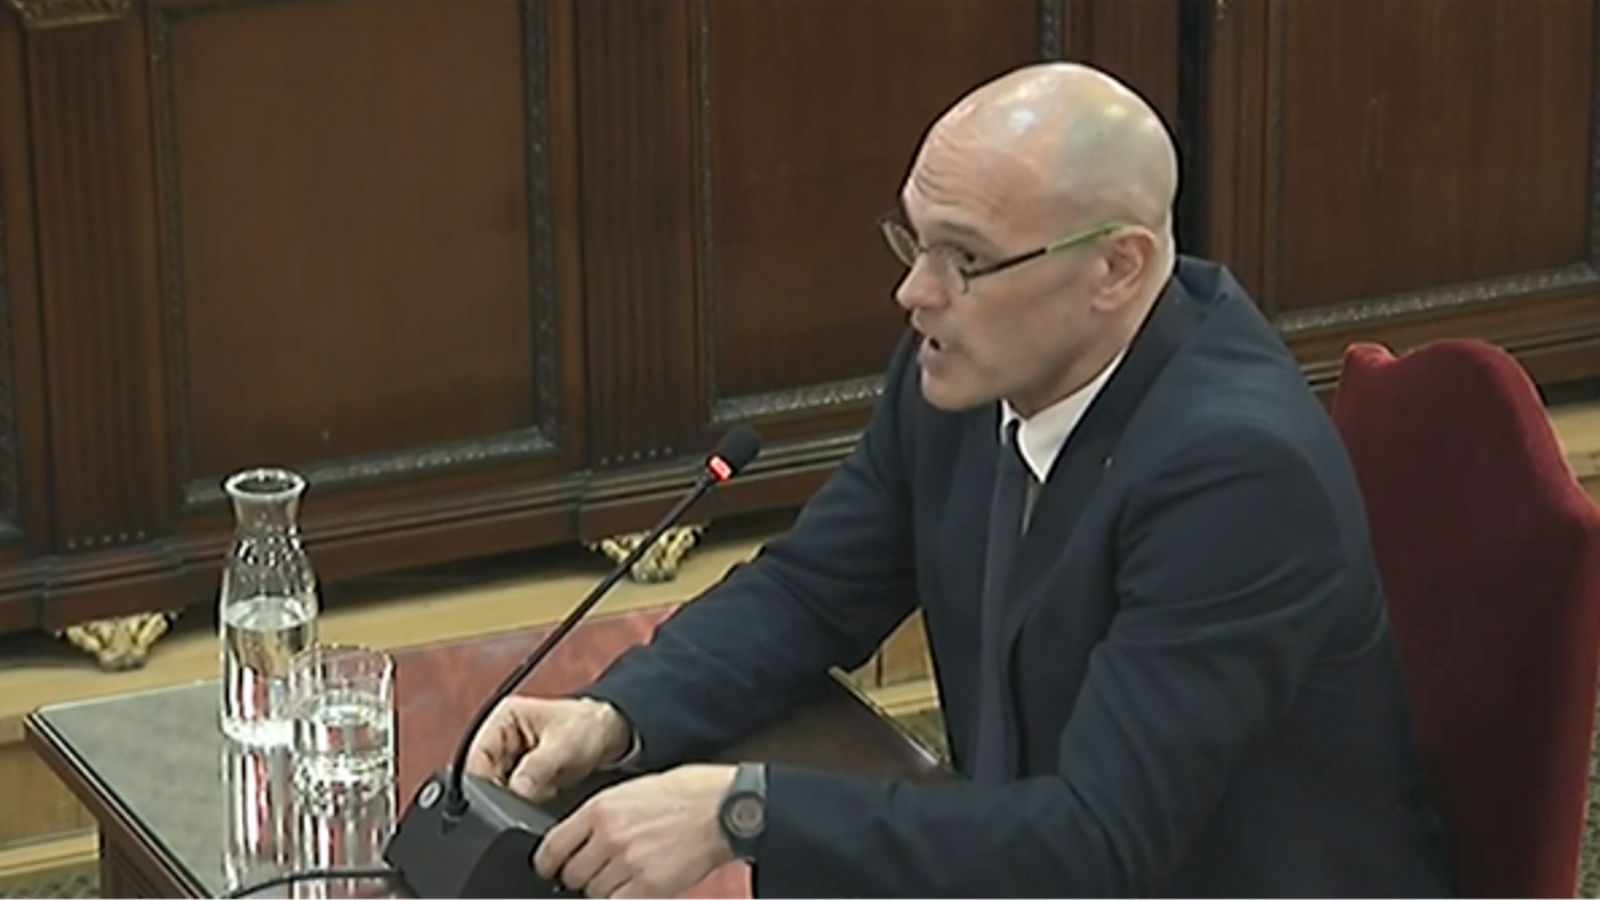 Former MEP Romeva, on trial in Spain: